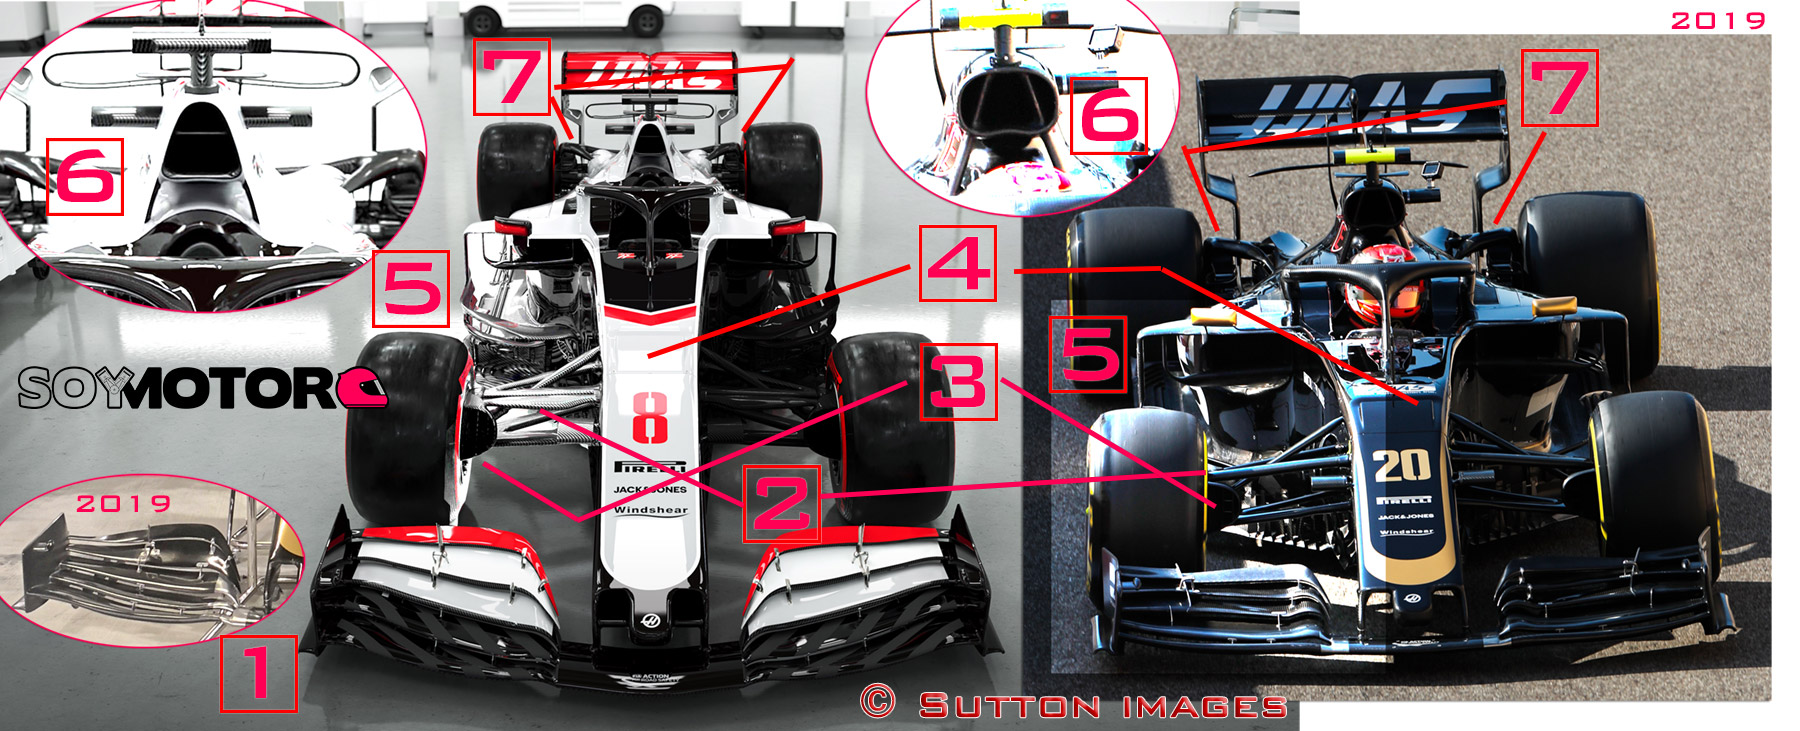 haas-vf20-vista-frontal.jpg